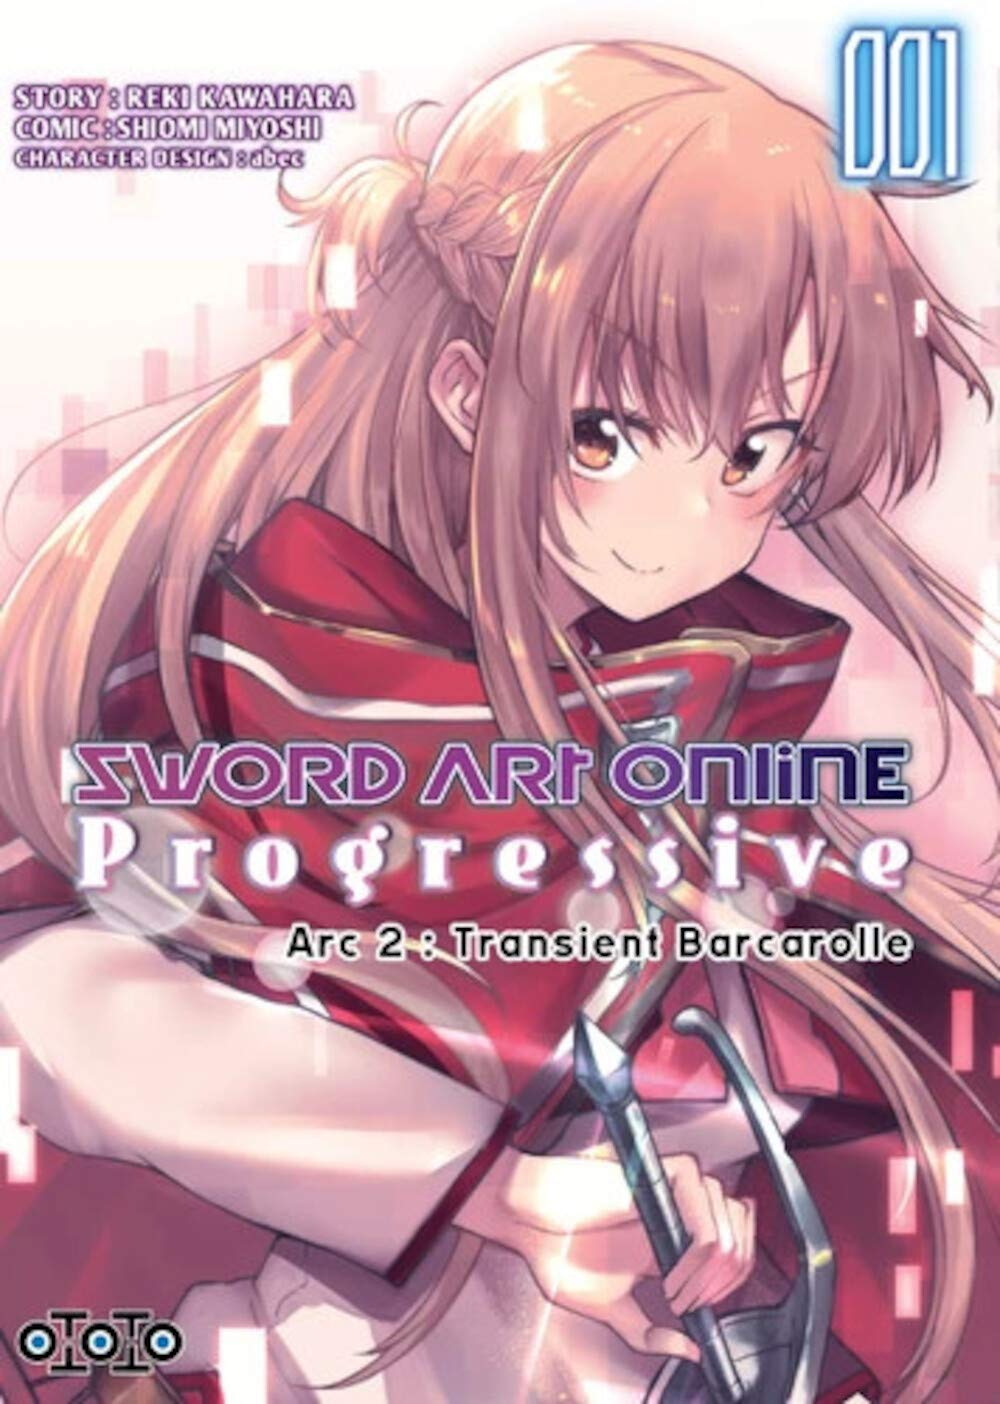 Sword art Online : Progressive Arc 2 Barcarolle 1